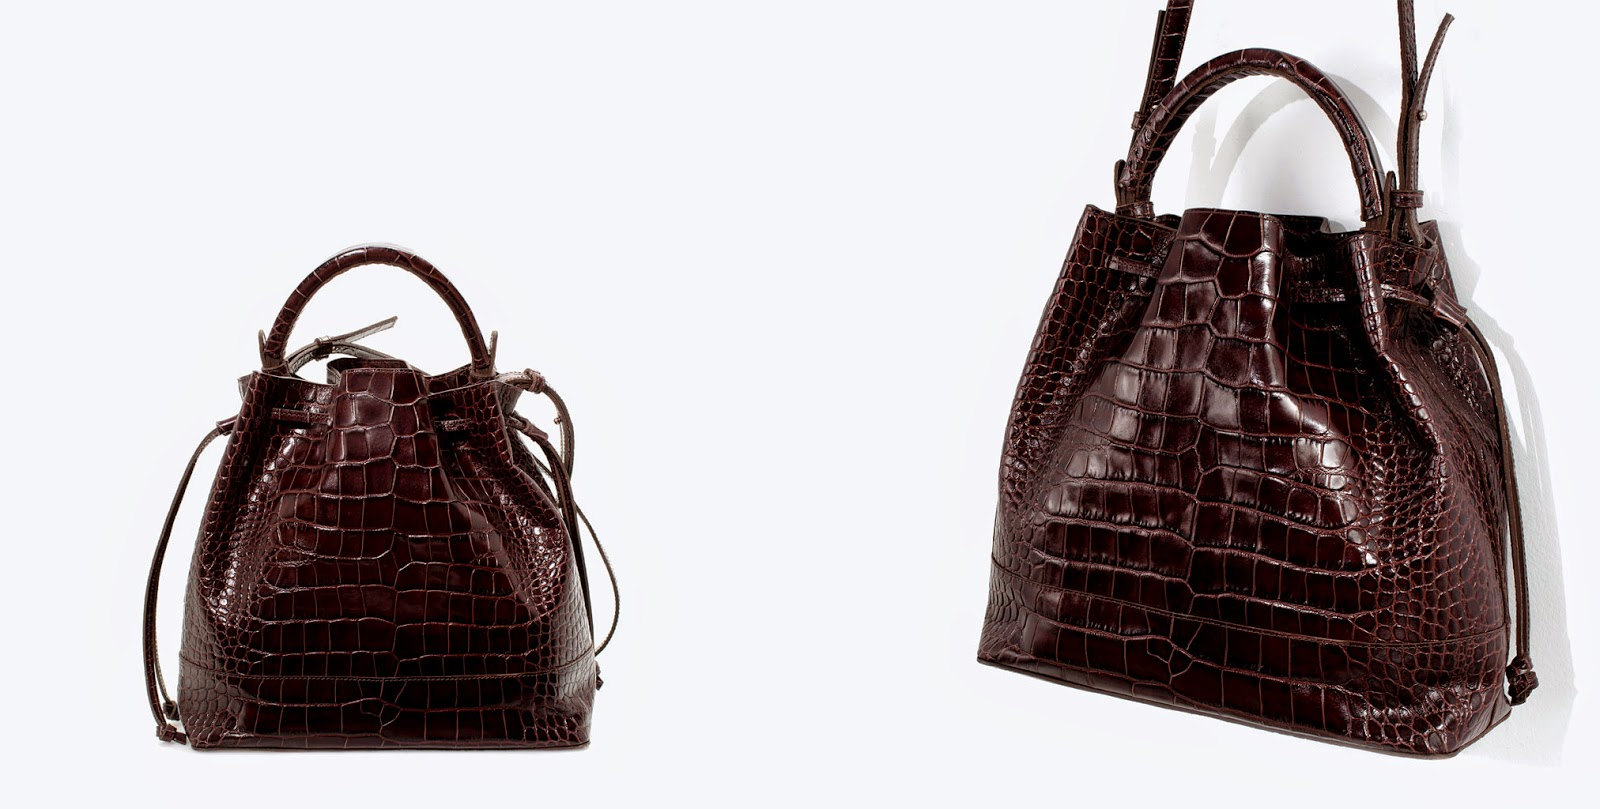 http://www.zara.com/uk/en/woman/handbags/croc-leather-bucket-bag-c269200p1985086.html